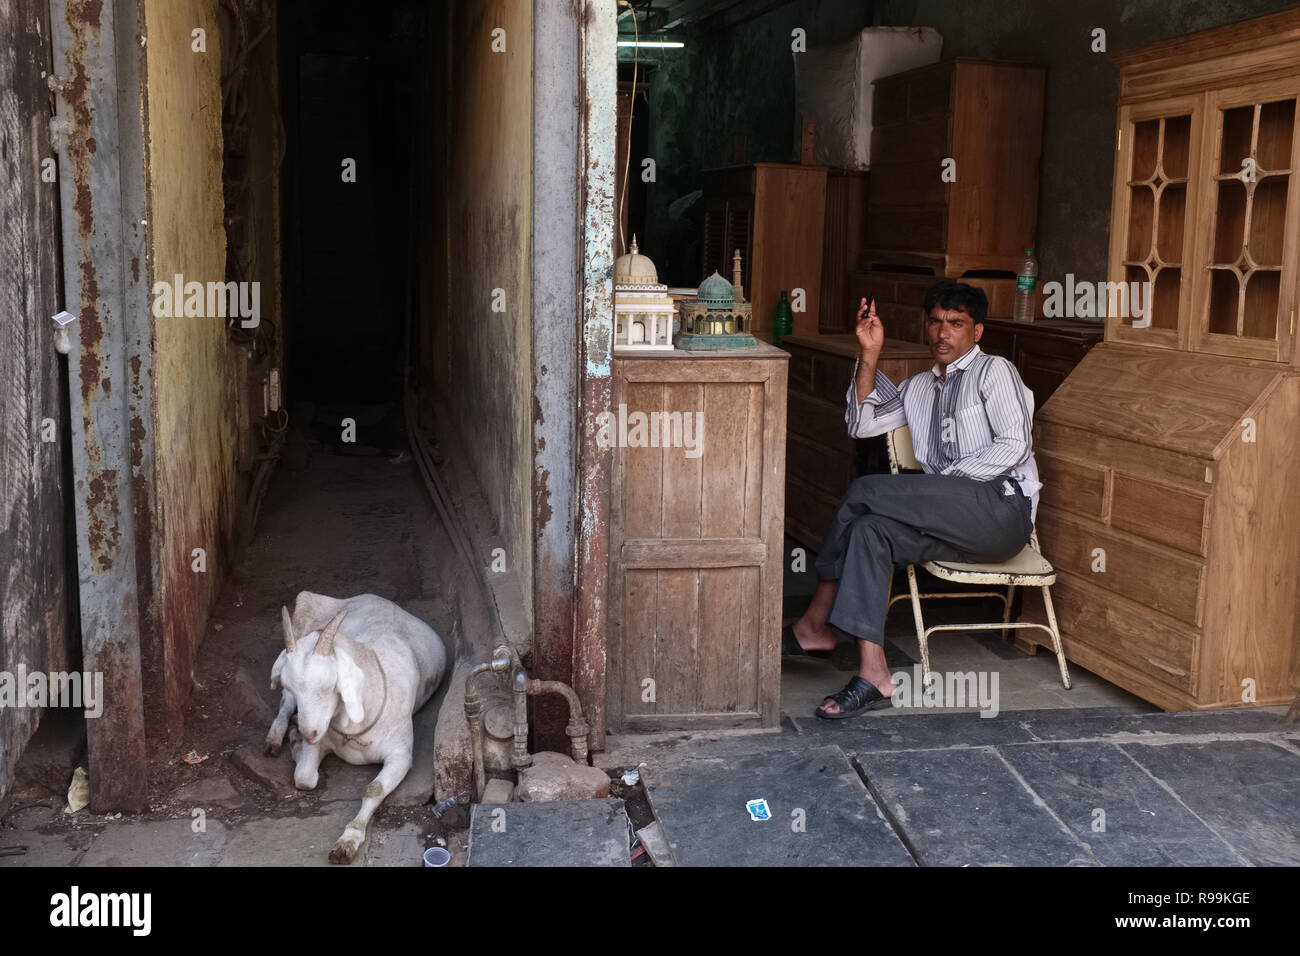 A furniture vendor in Thieves' Market or Chor Bazar in Mumbai, India, a goat kept for its meat resting nearby - Stock Image